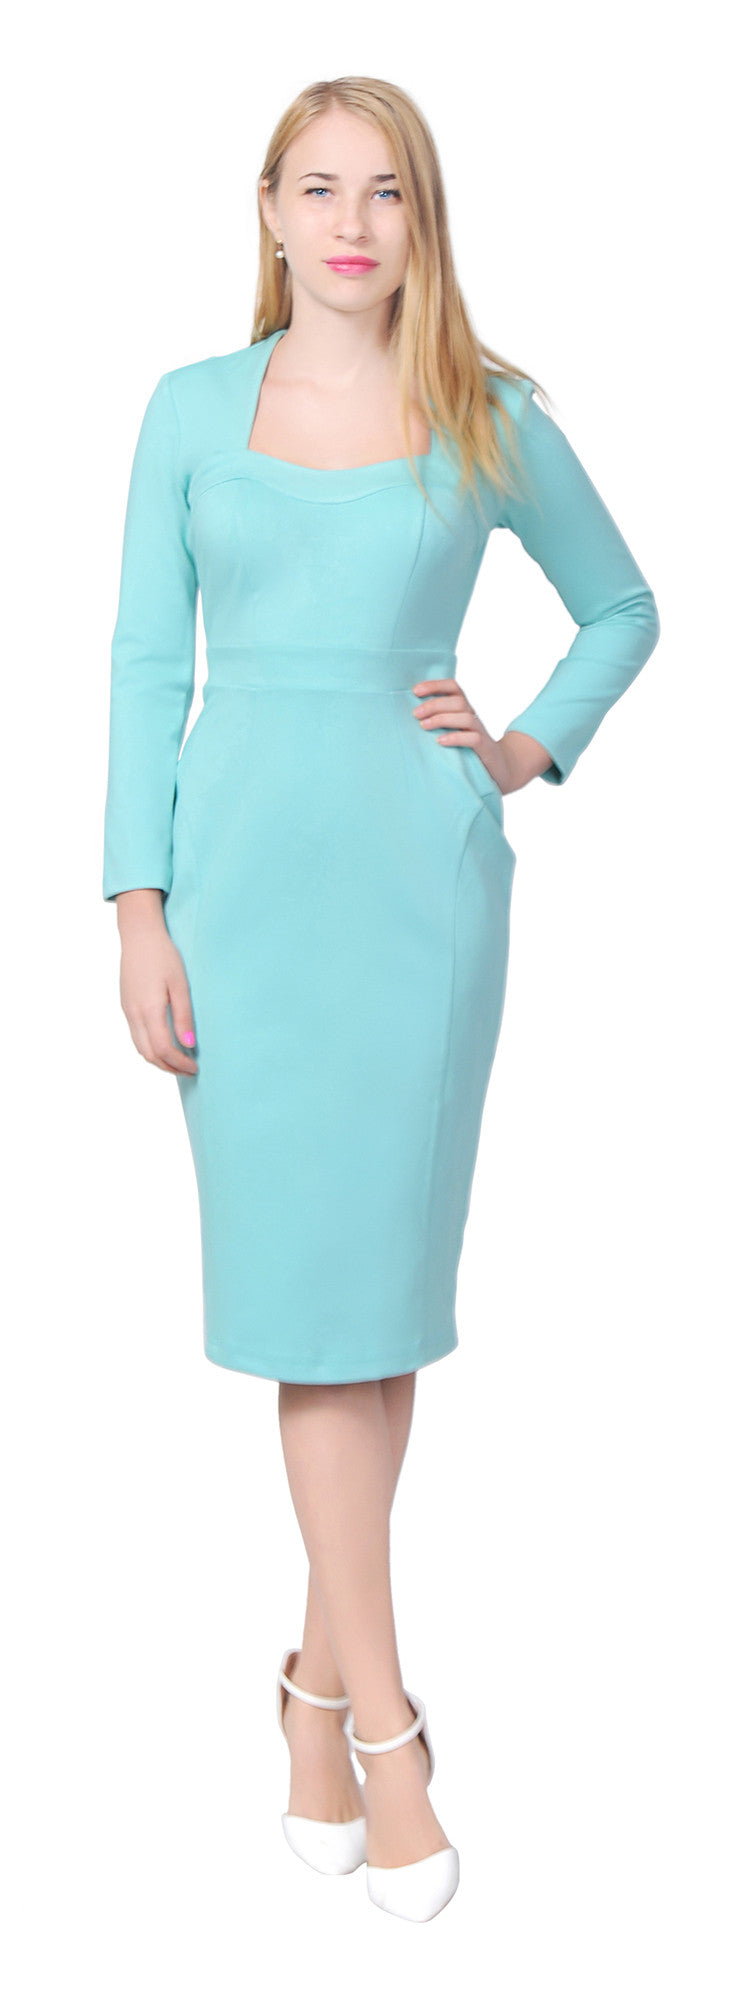 Women's Retro Sweetheart Neck Long sleeve Pencil Midi Dress